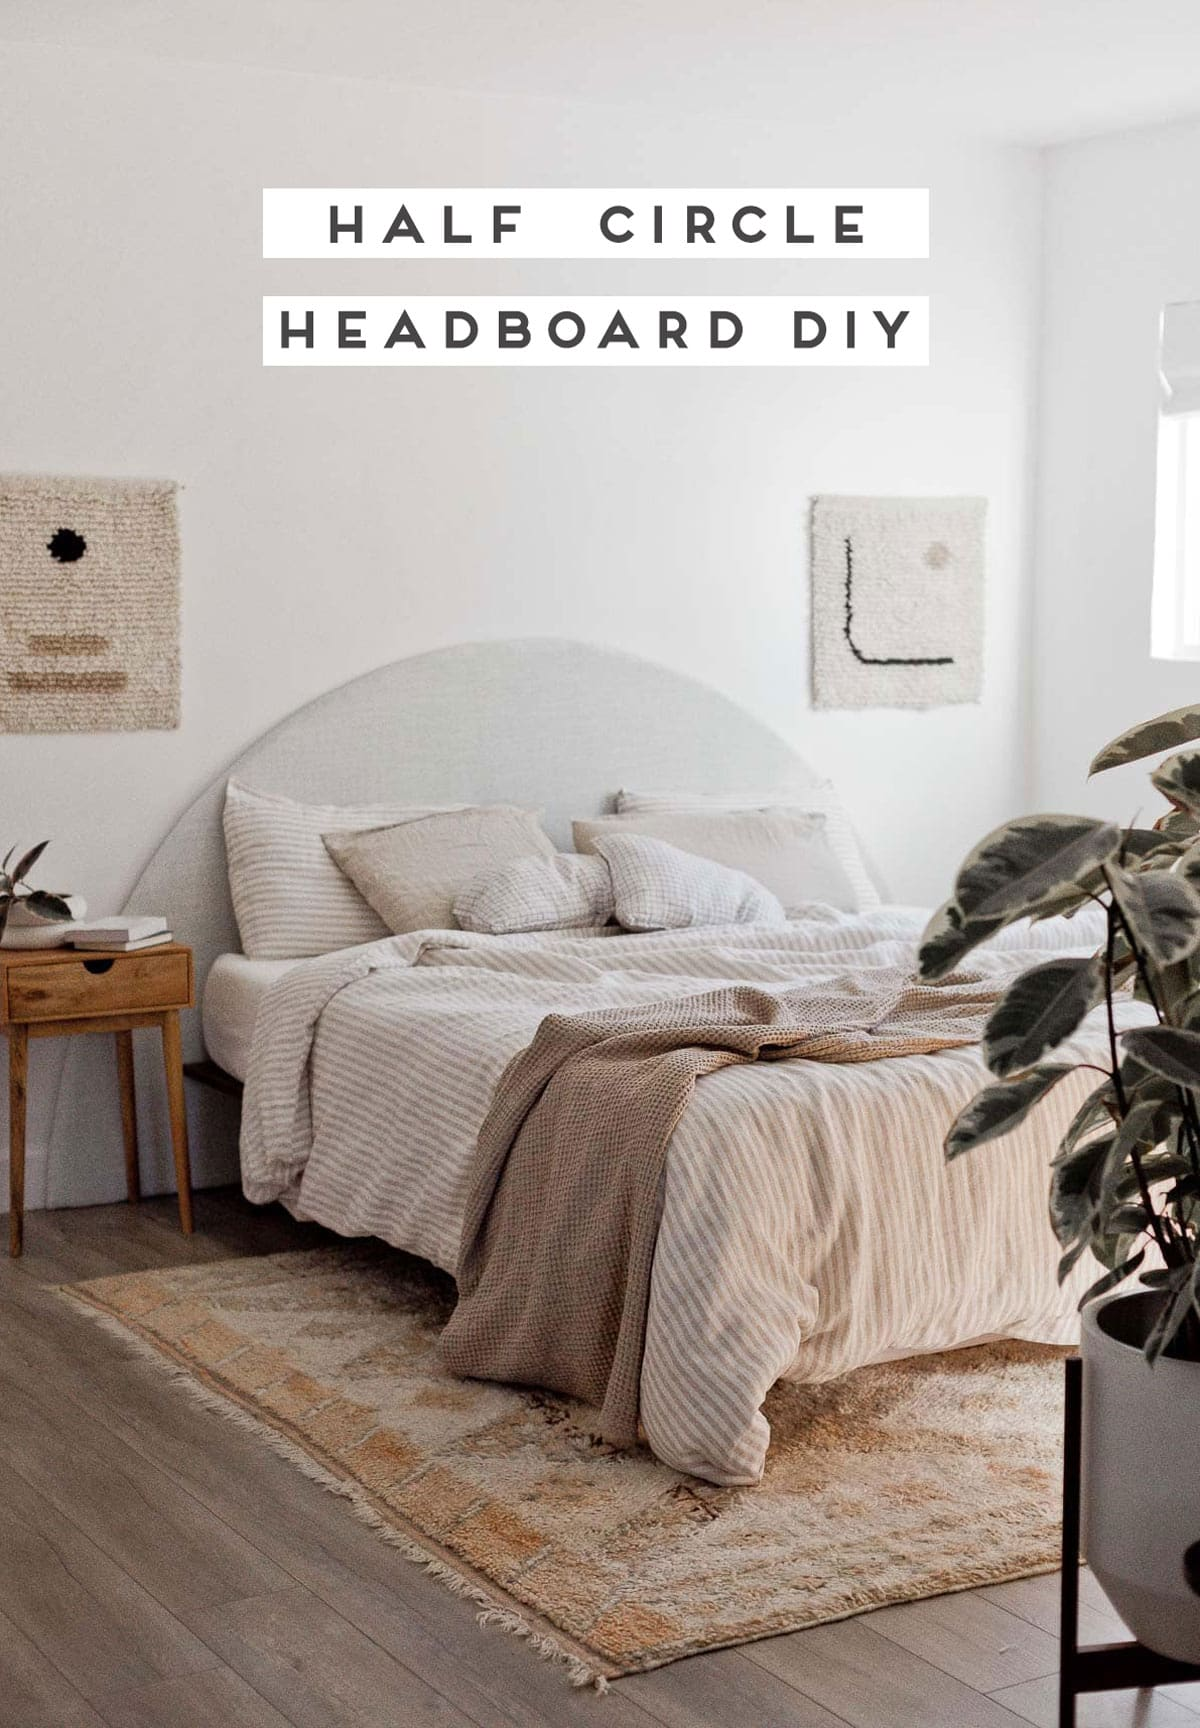 Neutral modern bedroom with a half circle headboard and striped neutral bedding.